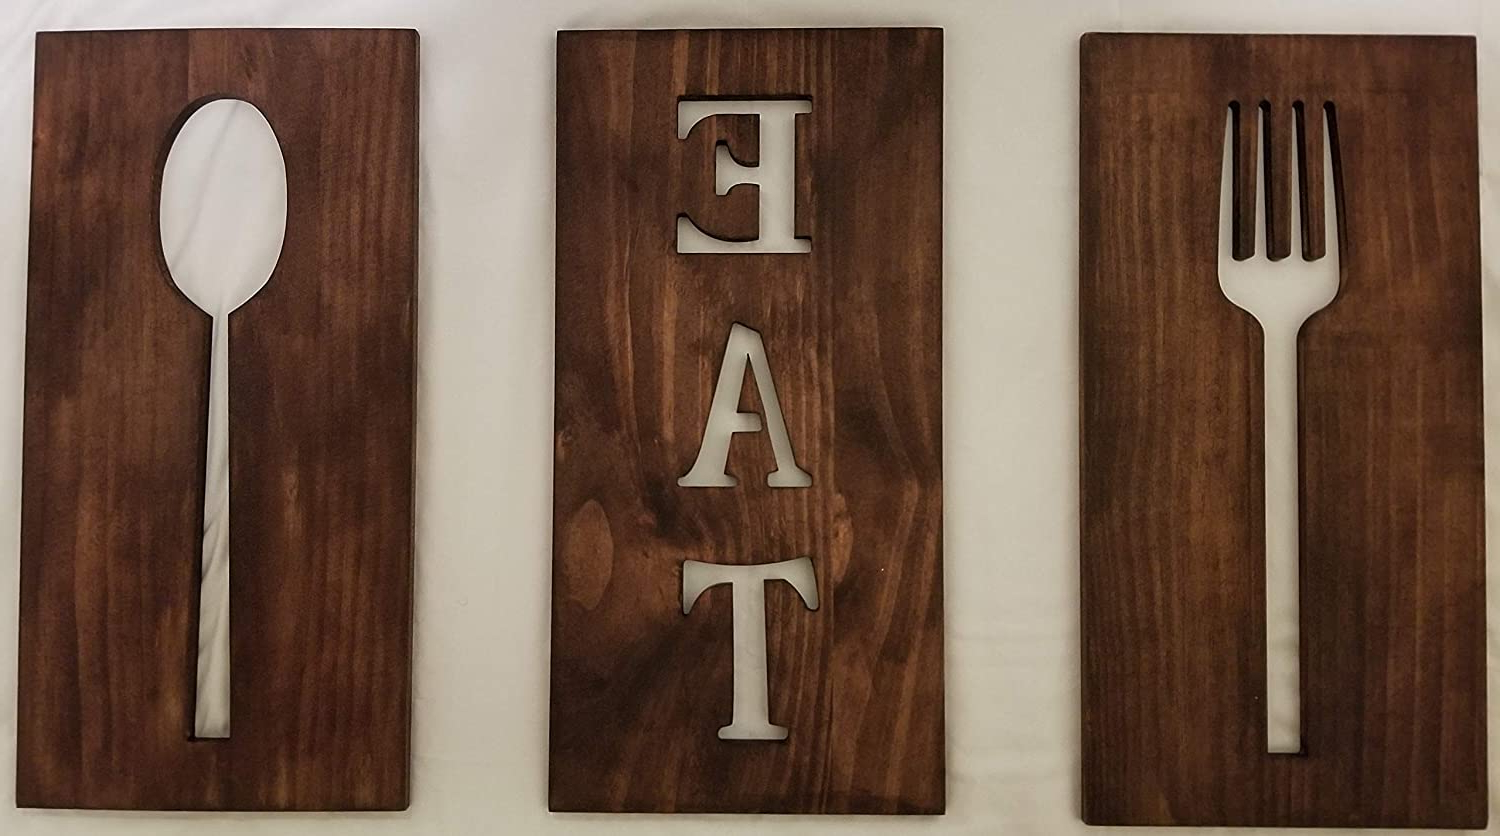 Popular Eat Rustic Farmhouse Wood Wall Décor For Michigan Warehouse Wooden Kitchen Decor, Cutlery Signs, Stained Brown Kitchen Art, Fork And Spoon Wall Decor, Wood Signs, Kitchen Designs, Eat Sign (View 20 of 20)